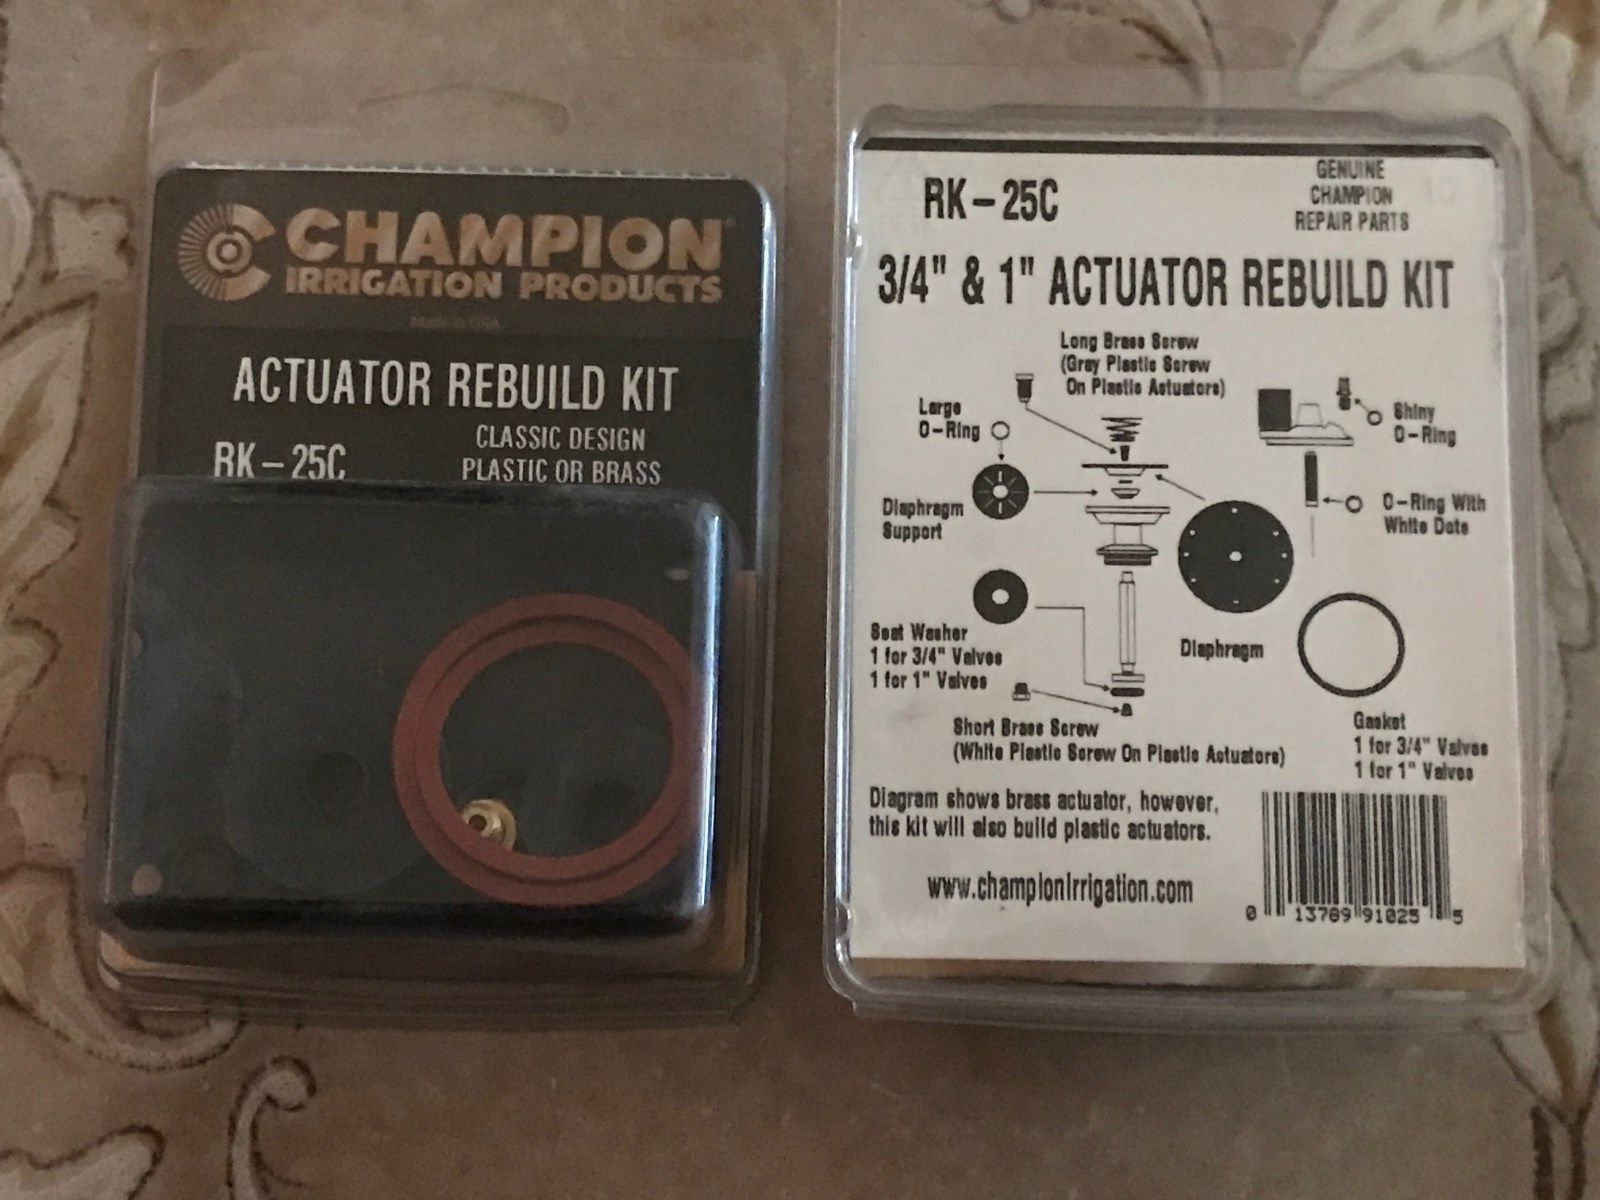 Lawn Sprinklers 20542 Champion Rk 25c 1 Or 3 4 Inch Actuator Repair Kit 2 A Pair Of Buy It Now Only 12 95 On Ebay Sprin Lawn Sprinklers Actuator Repair